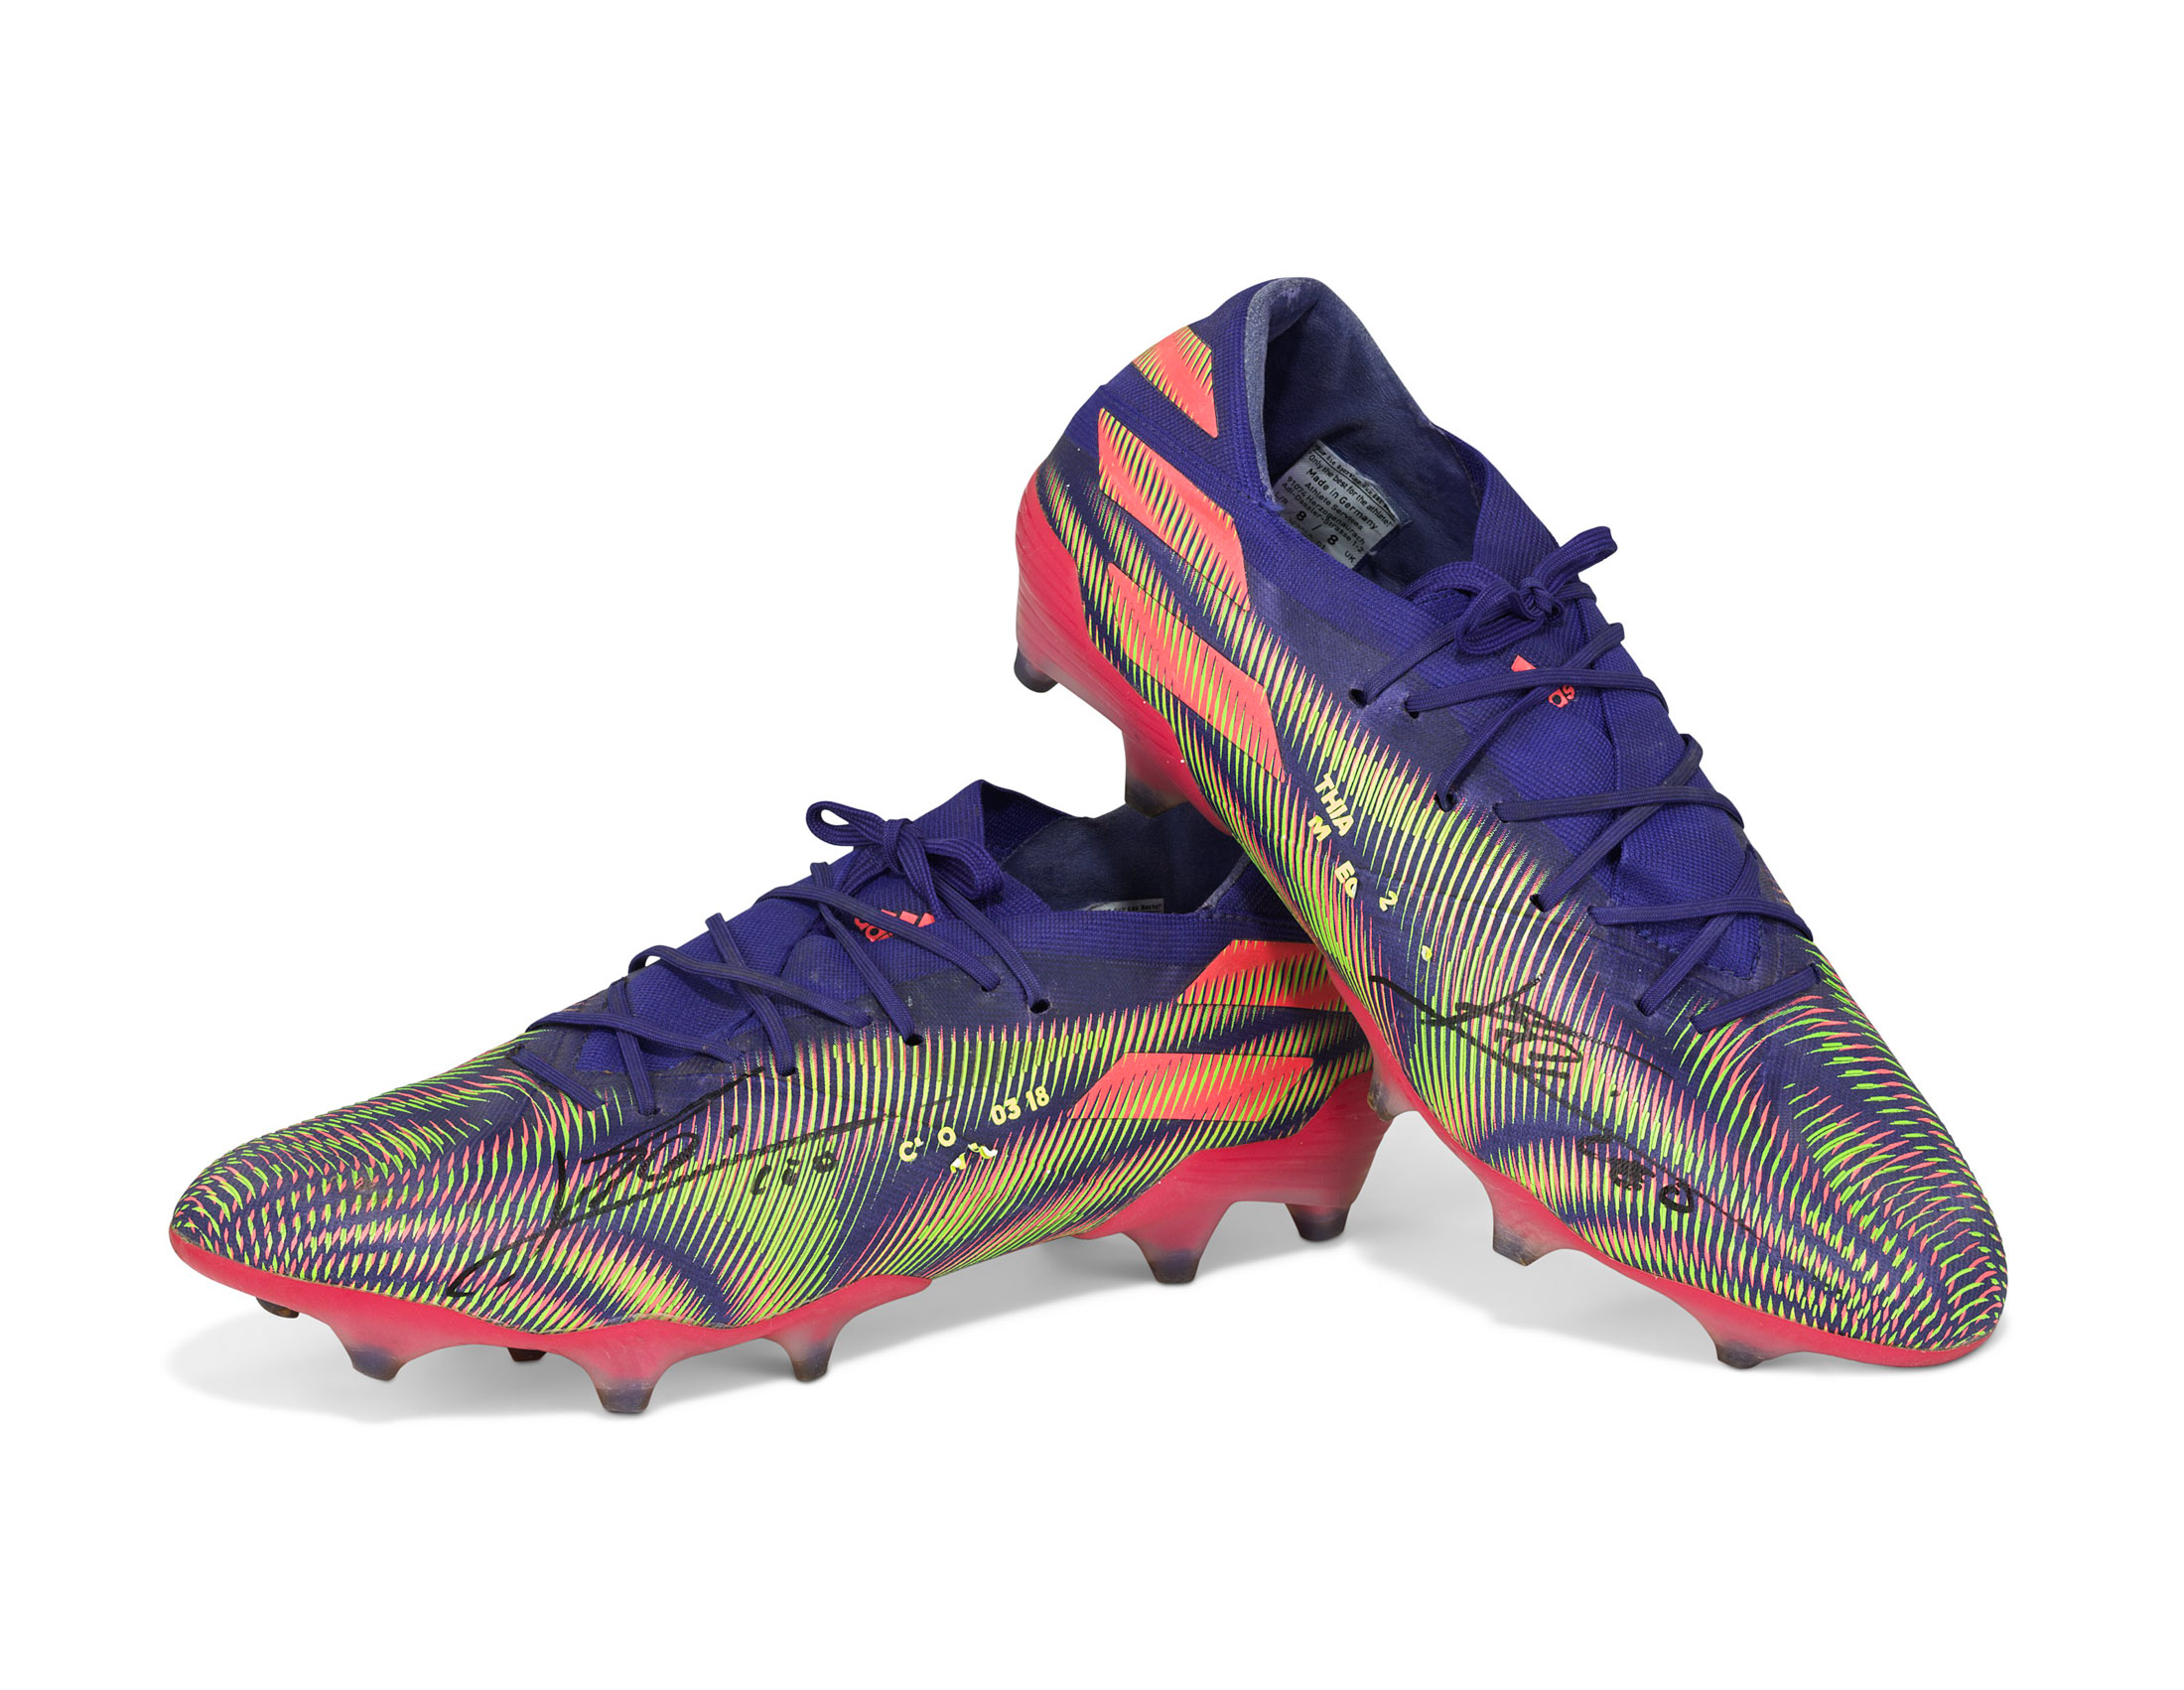 Lionel Messi Soccer Cleats Up For 100 000 At Christie S Auction Bloomberg